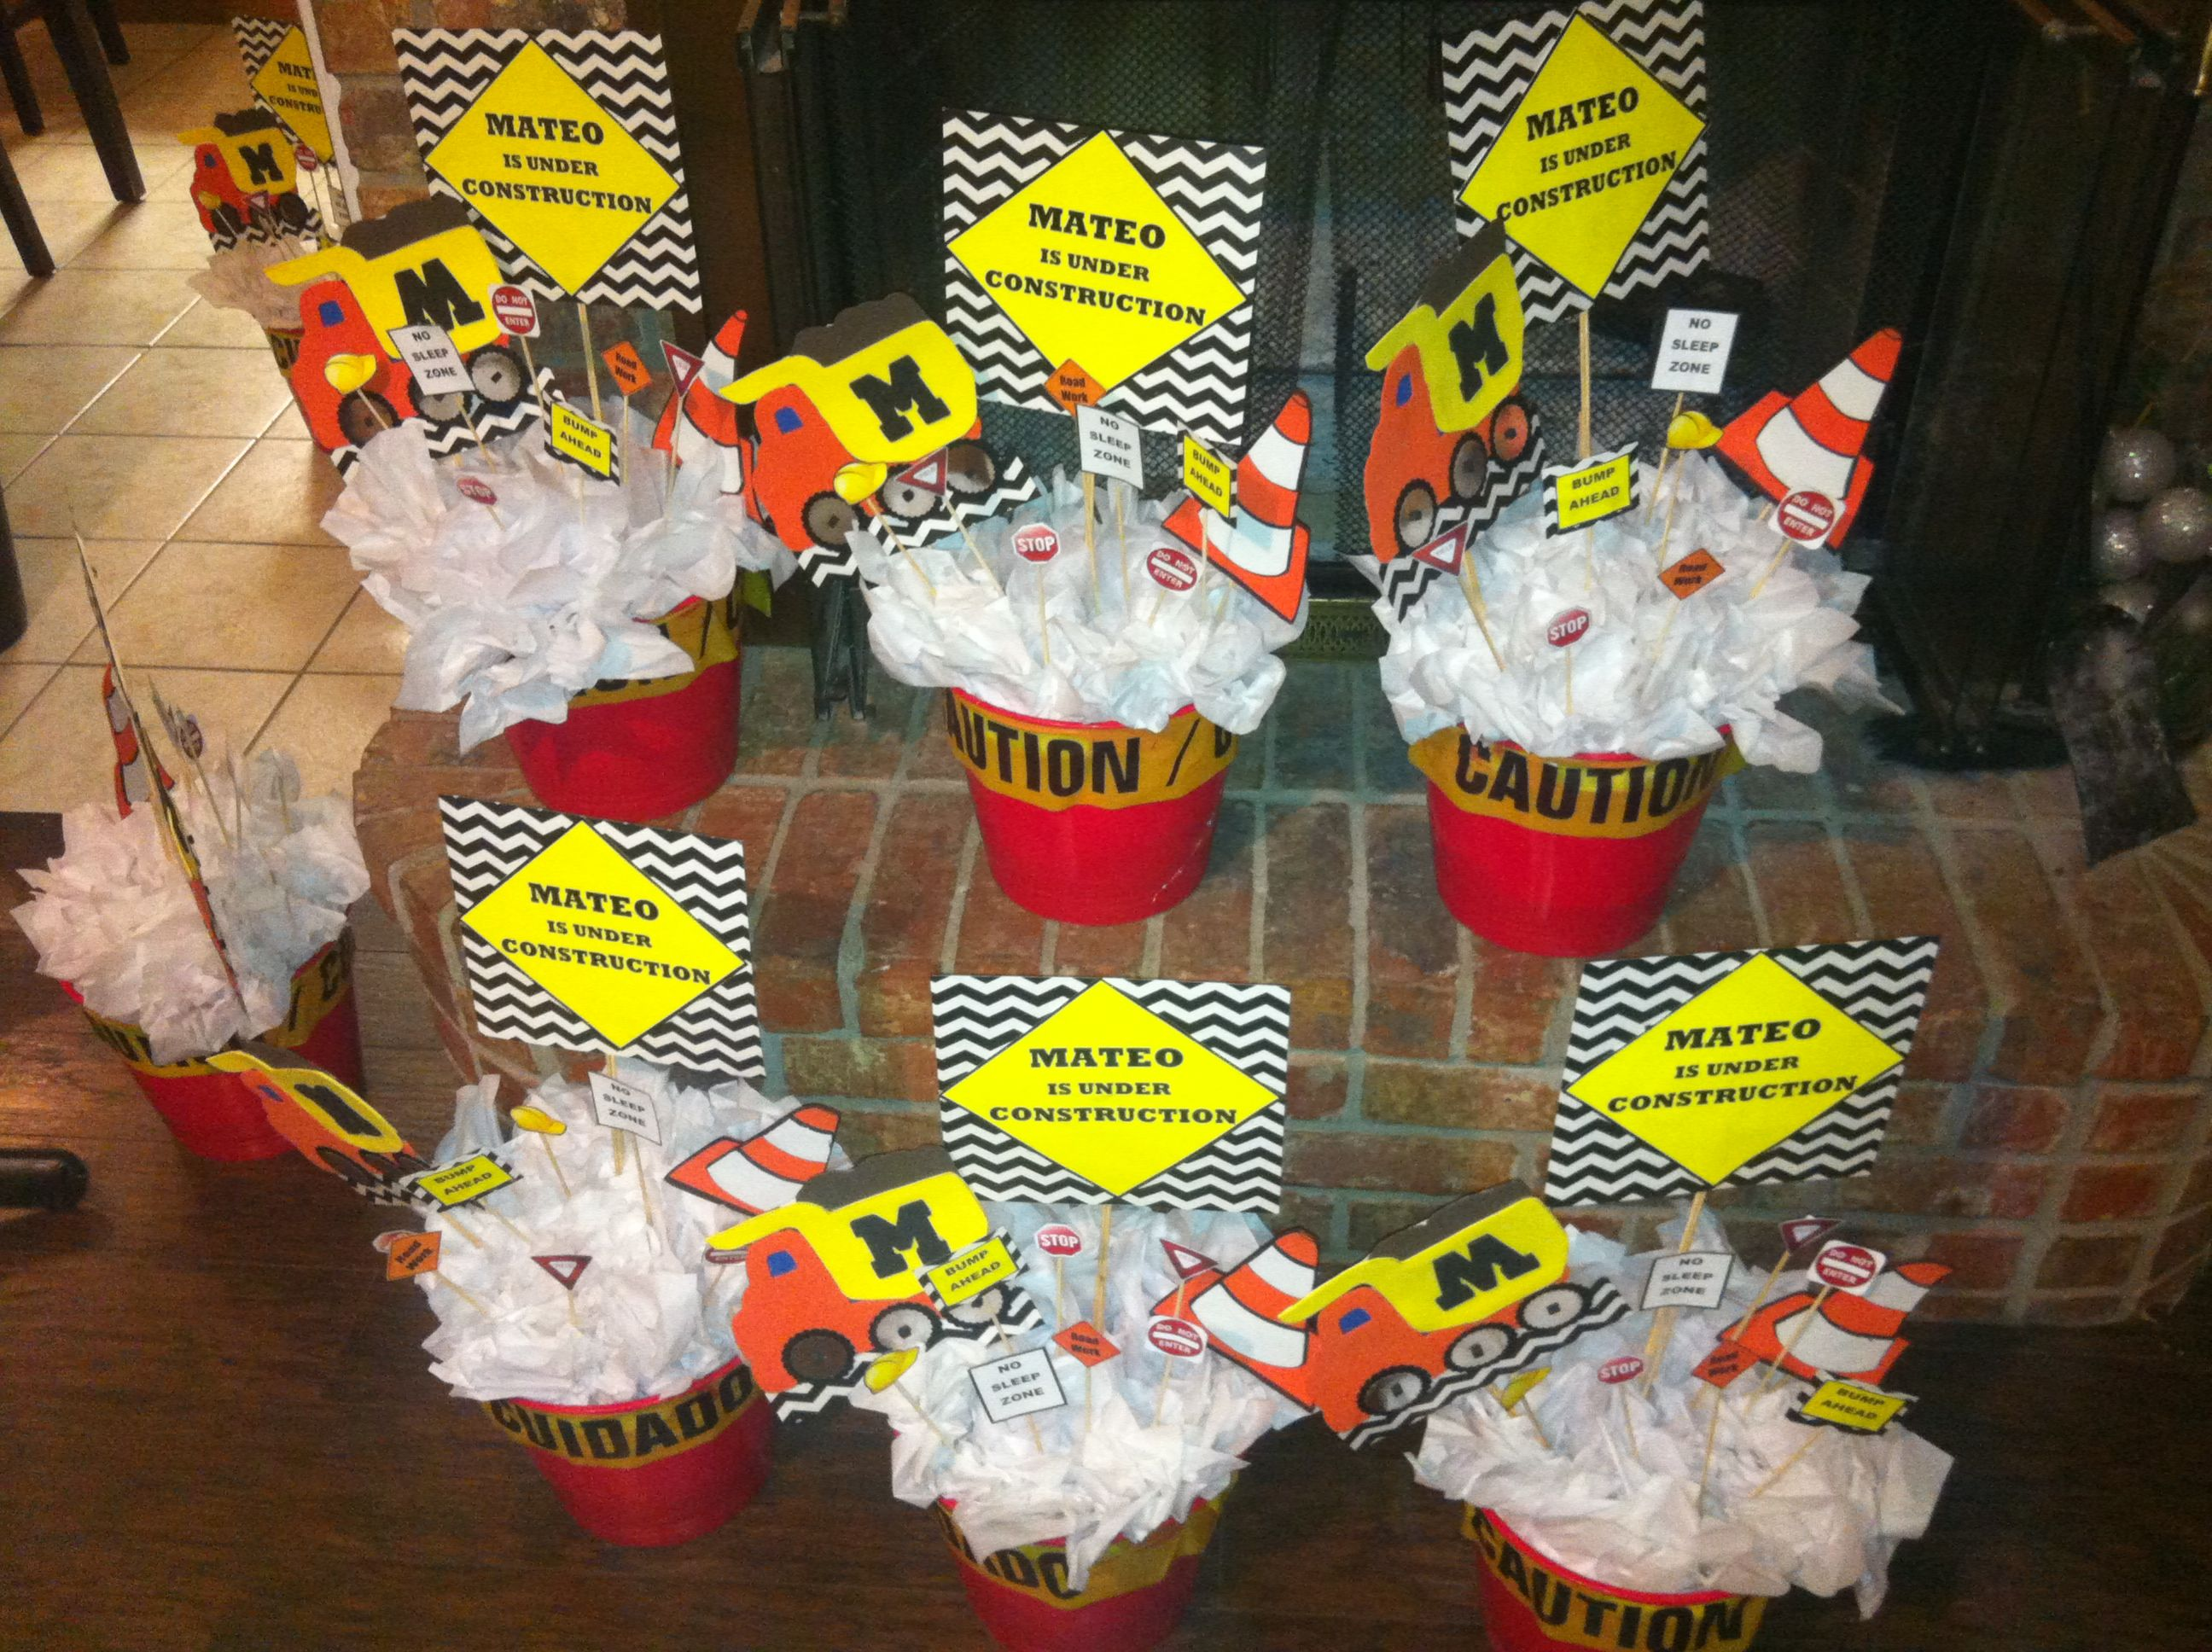 Centerpieces For Under Construction Baby Shower We Bought Buckets